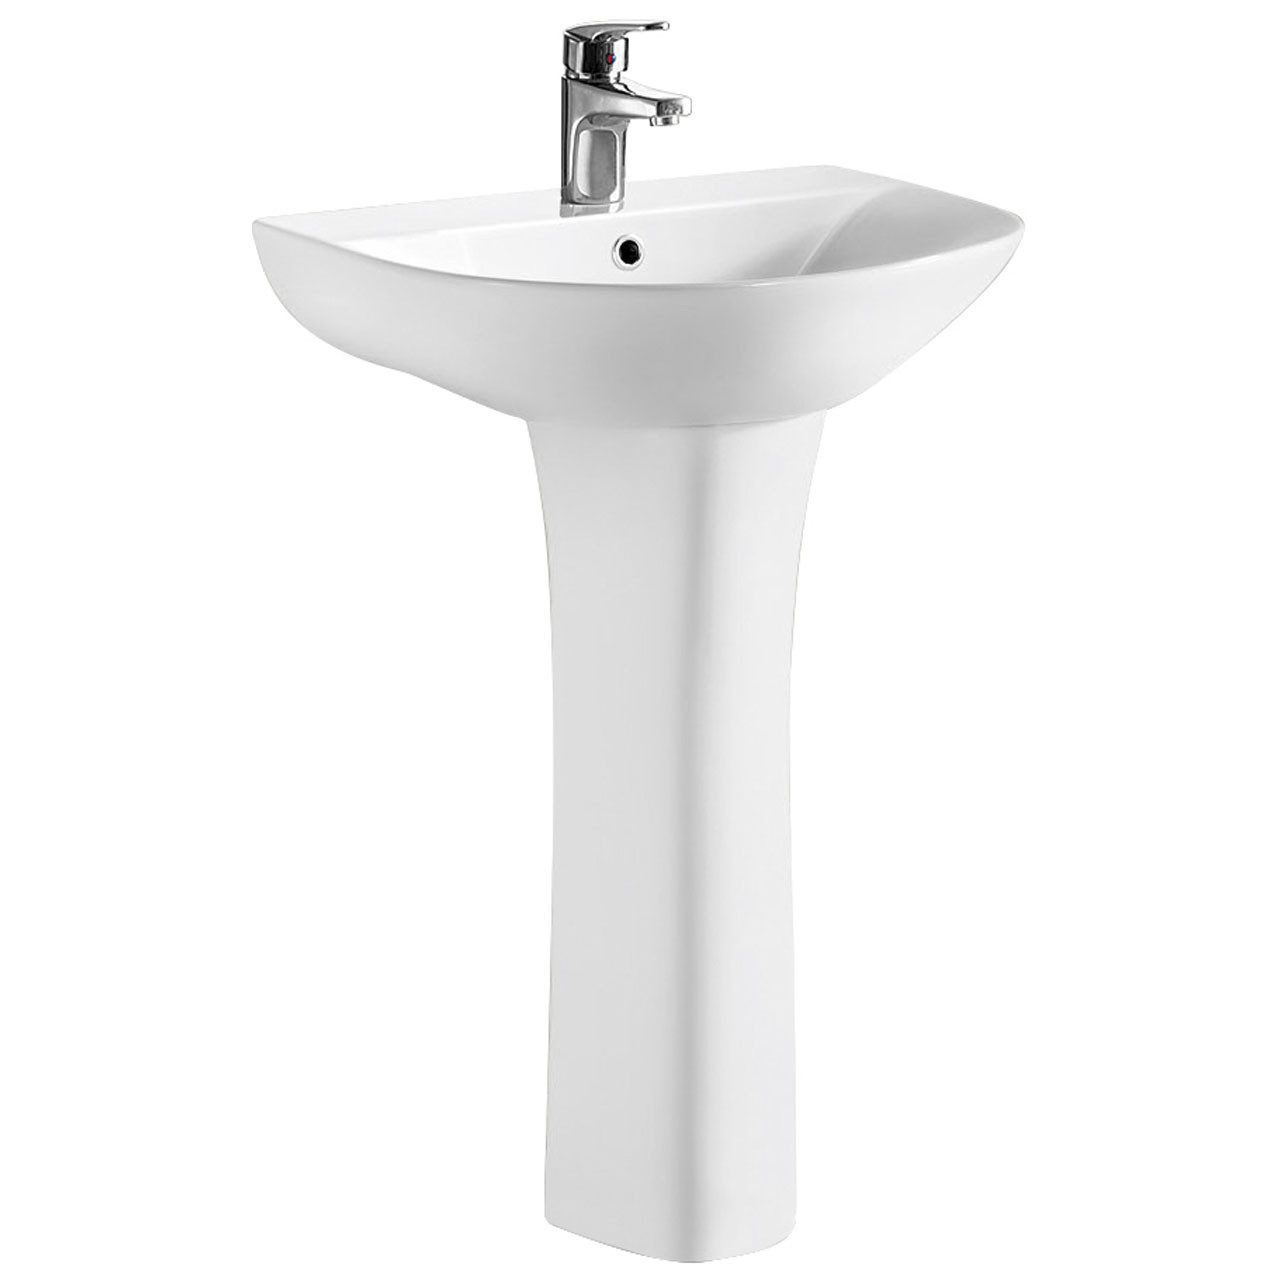 Nuie Freya 550mm Basin with 1 Tap Hole and Full Pedestal - NCG300